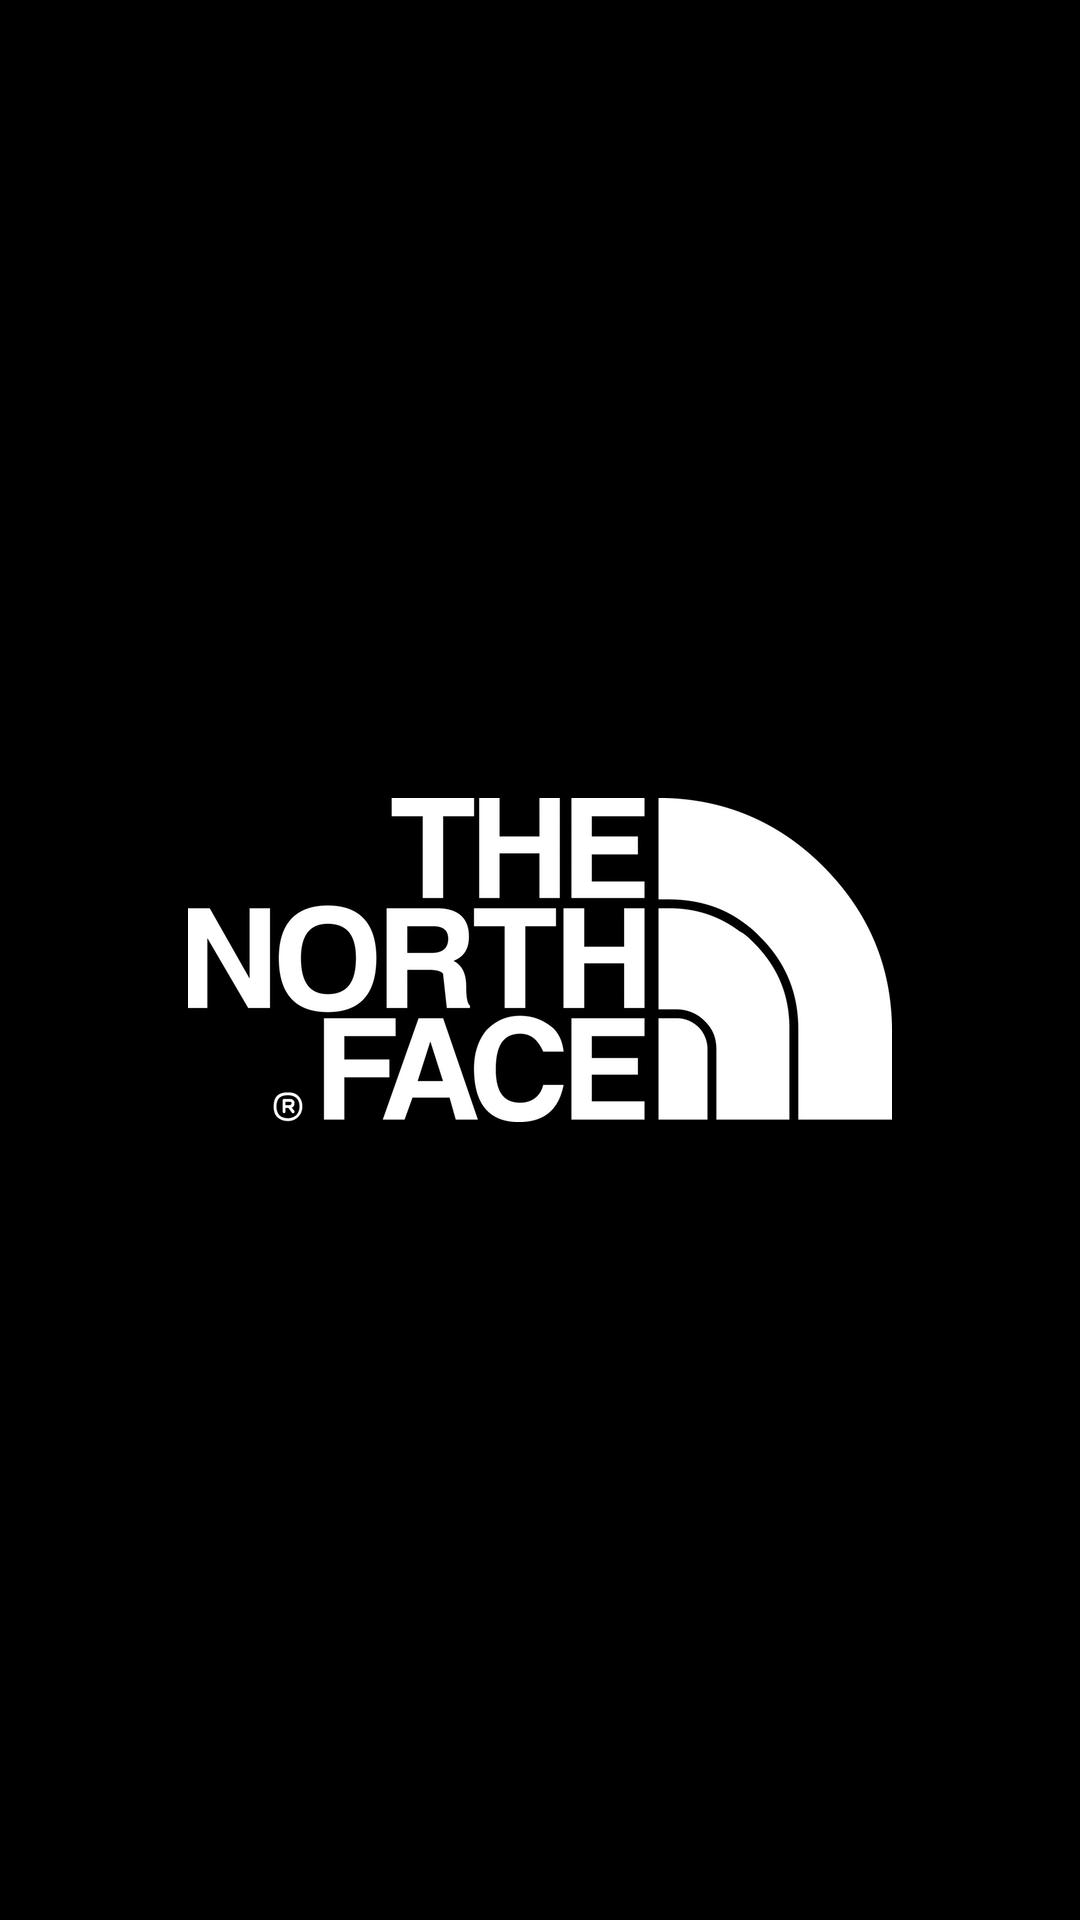 the north face | iphone wallpaper